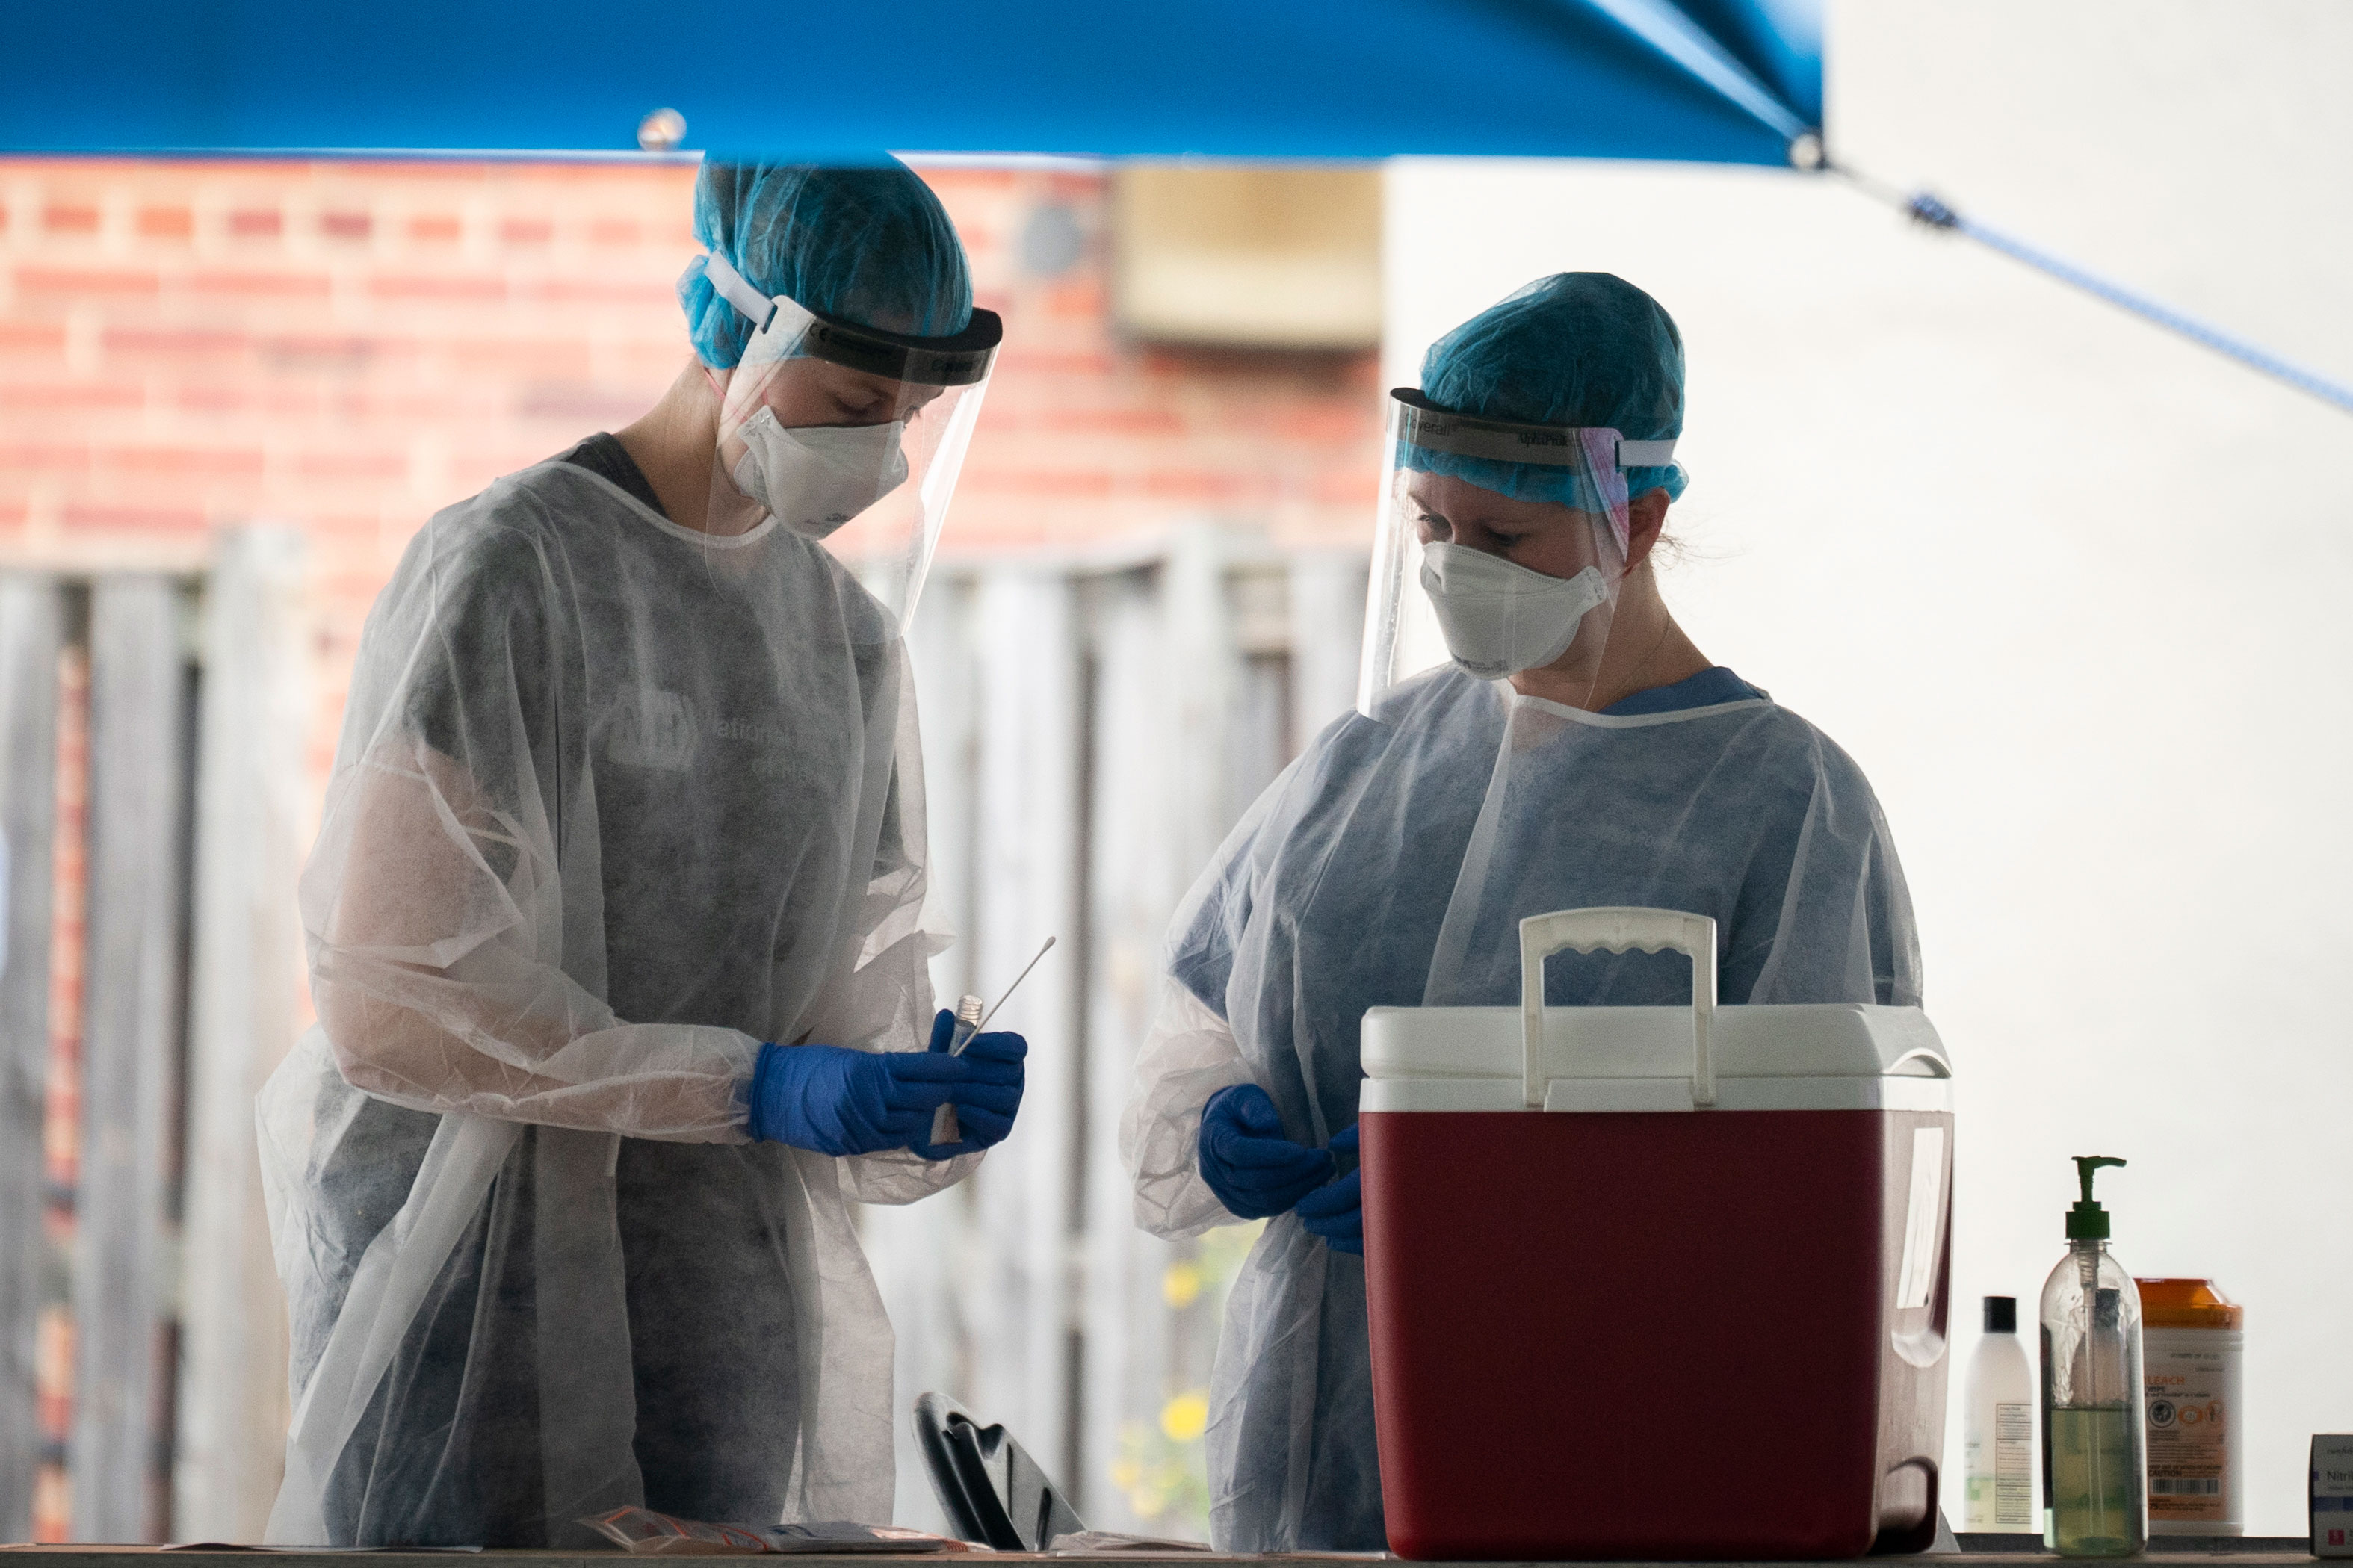 Medical professionals prepare to administer a coronavirus test at a drive-thru testing site run by George Washington University Hospital on May 26 in Washington.